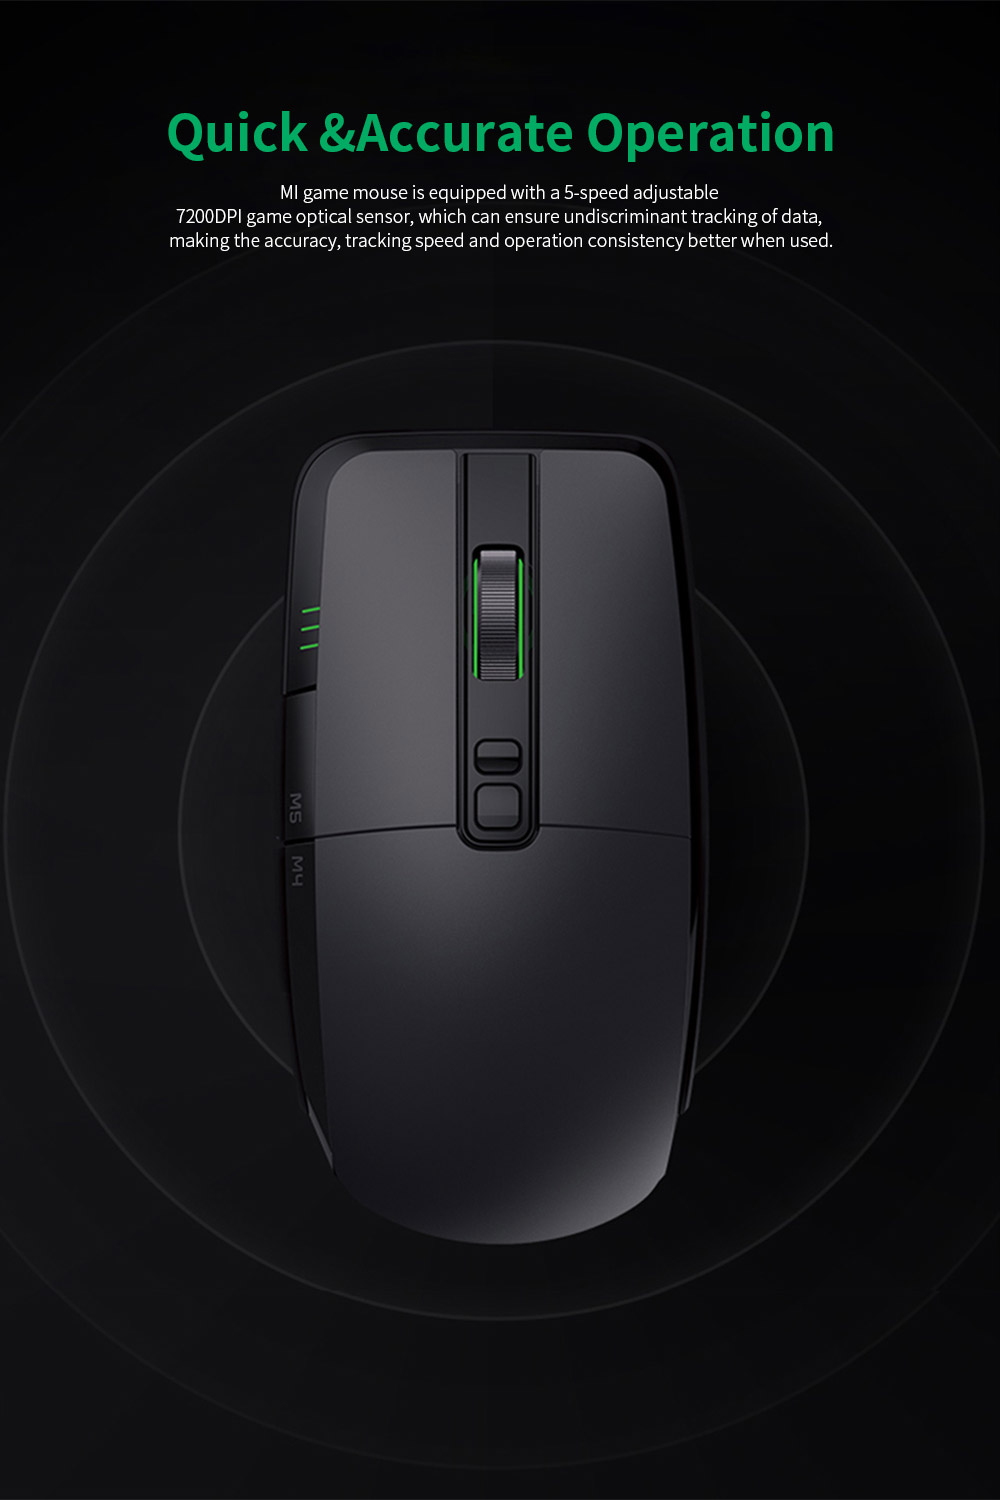 Xiaomi Gaming Mouse 7200DPI Wired Wireless Dual Mode Computer Mouse with Ergonomics Design and RGB Colorful Lights 2